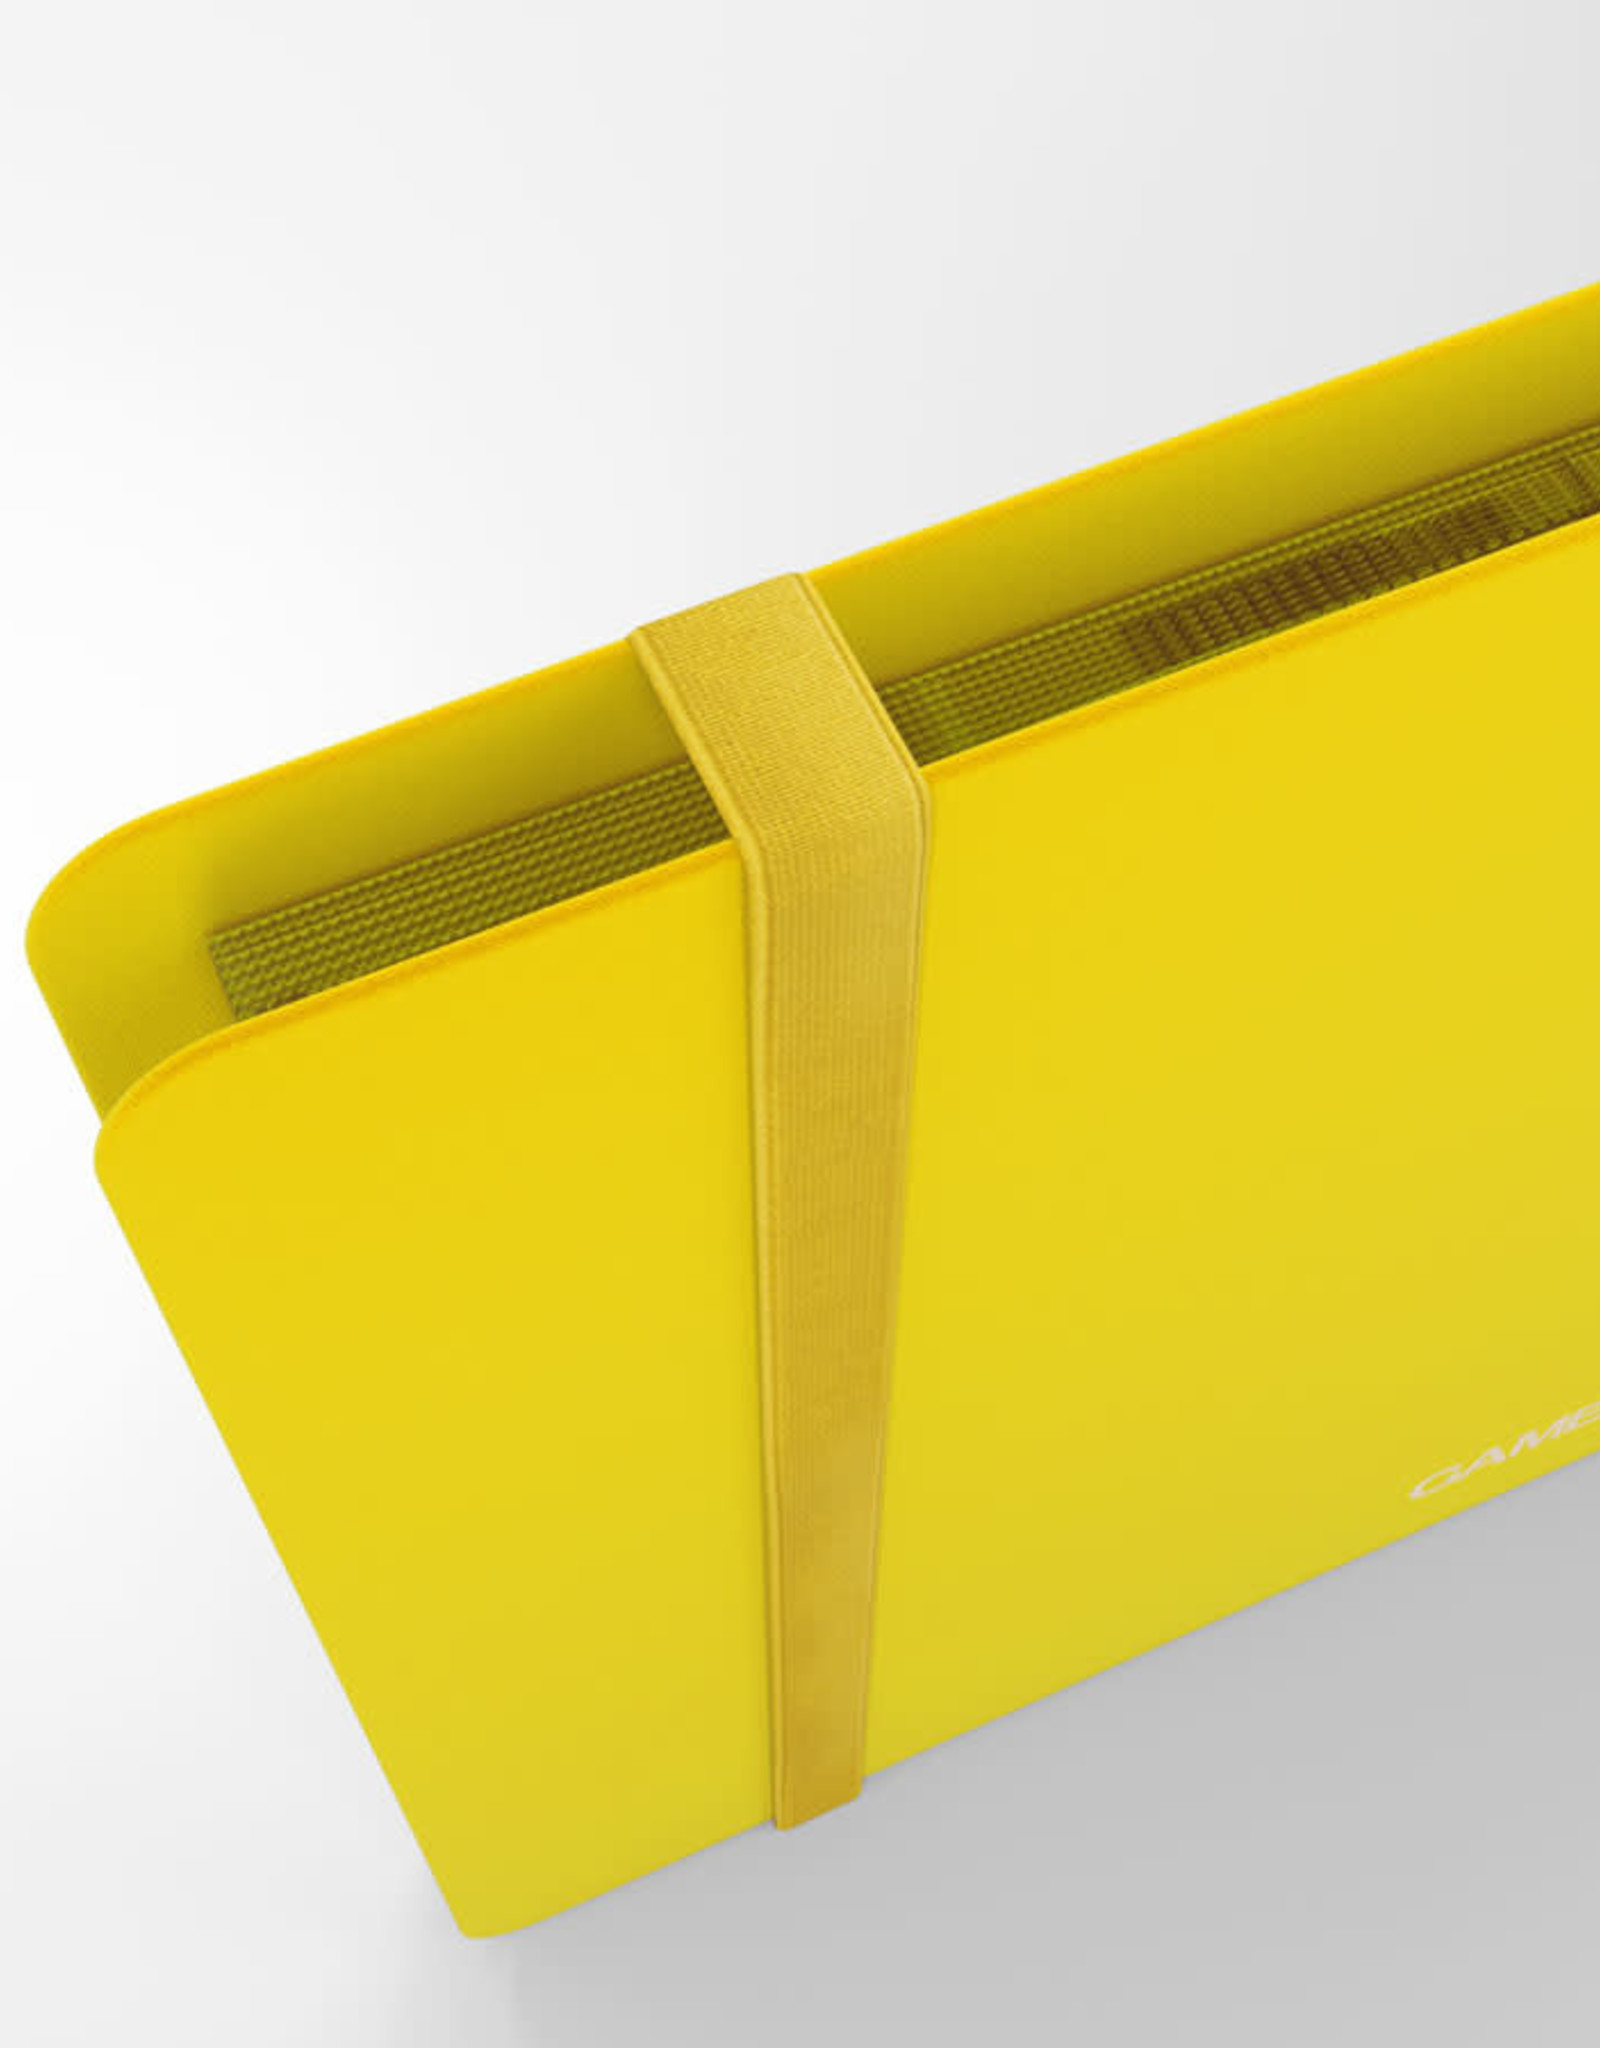 Casual Album: 8-Pocket Side-Loading Yellow